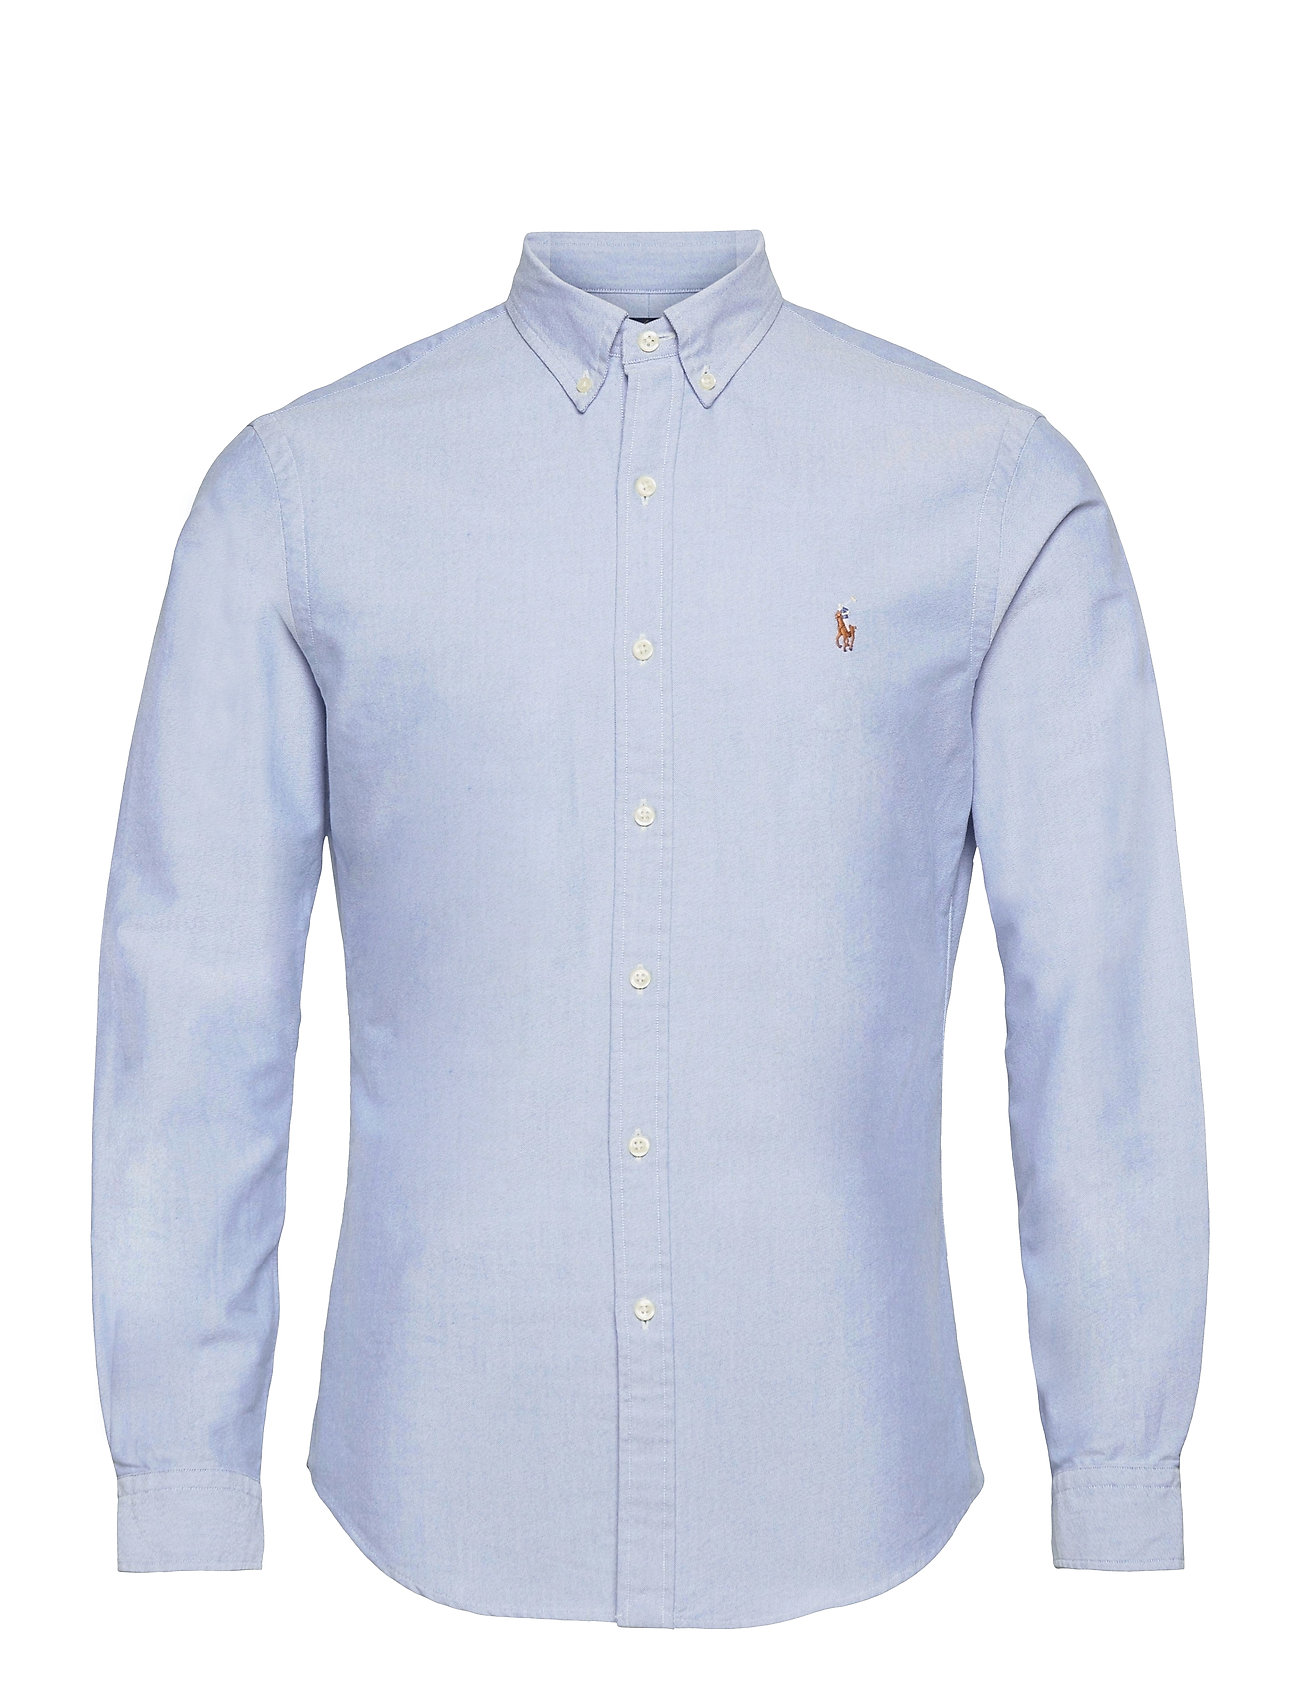 Polo Ralph Lauren Slim Fit Cotton Oxford Shirt - BSR BLUE